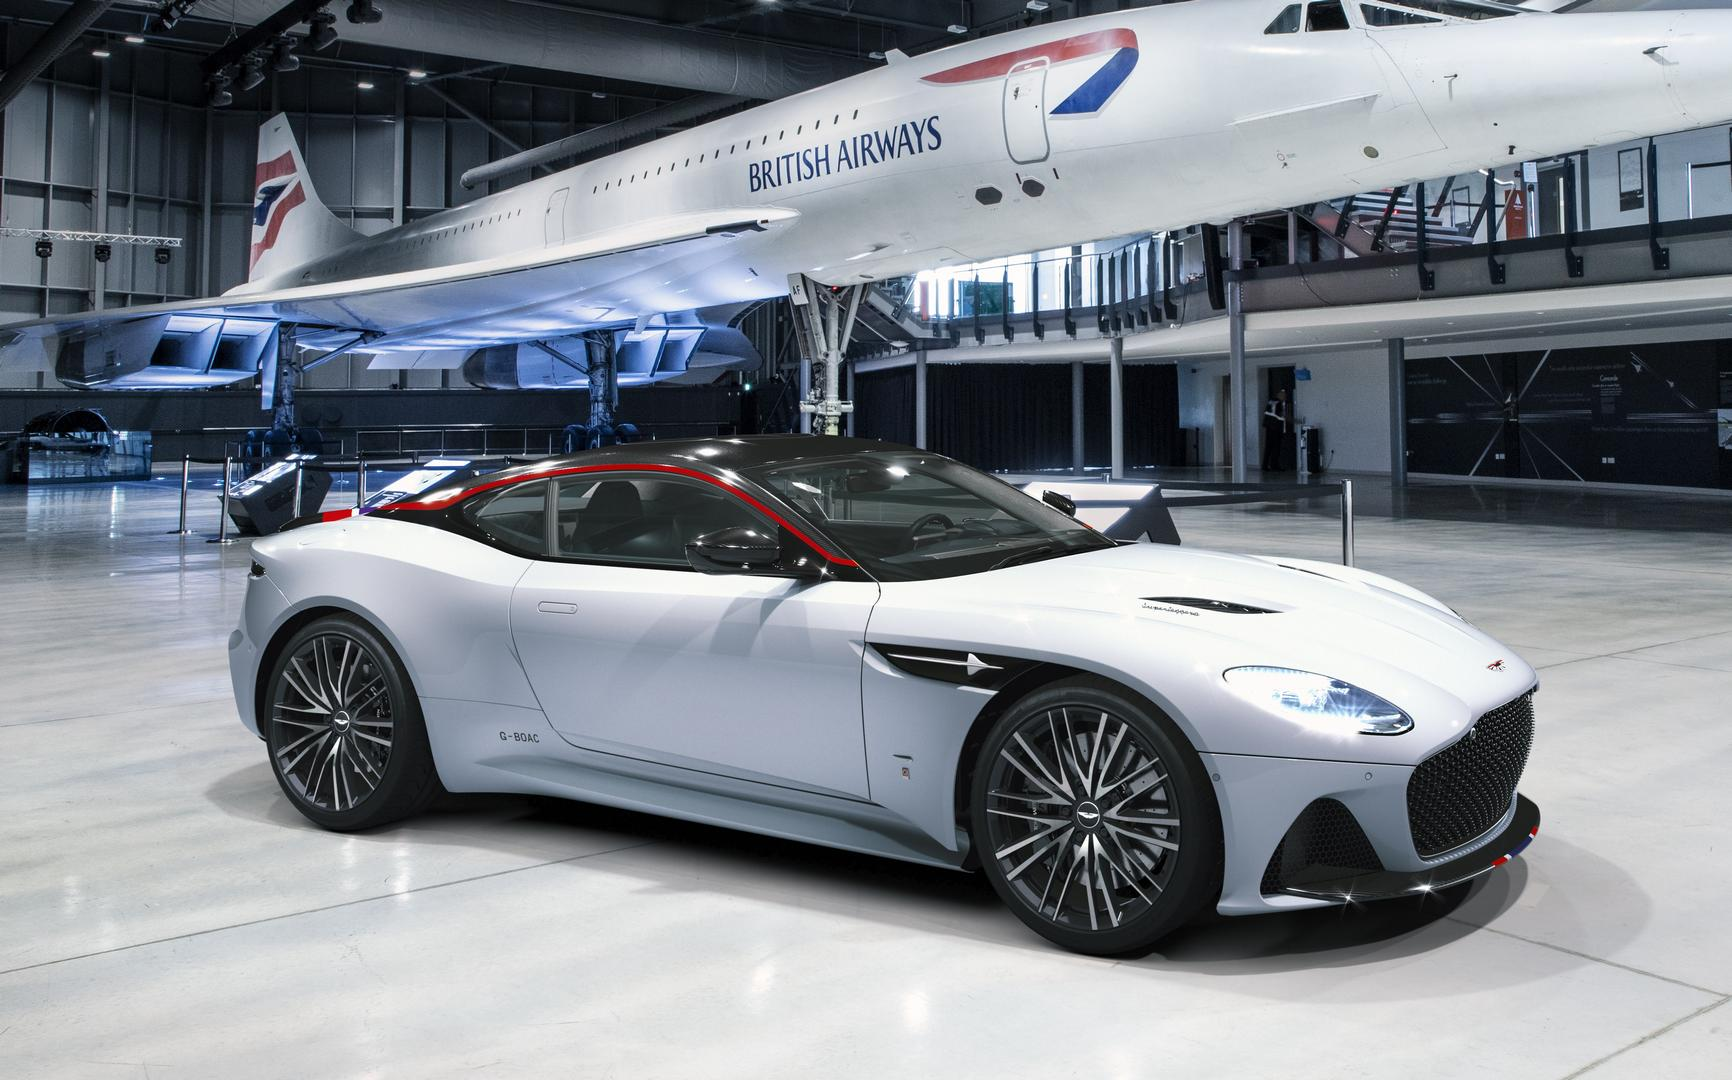 Aston Martin DBS Superleggera Concorde Edition